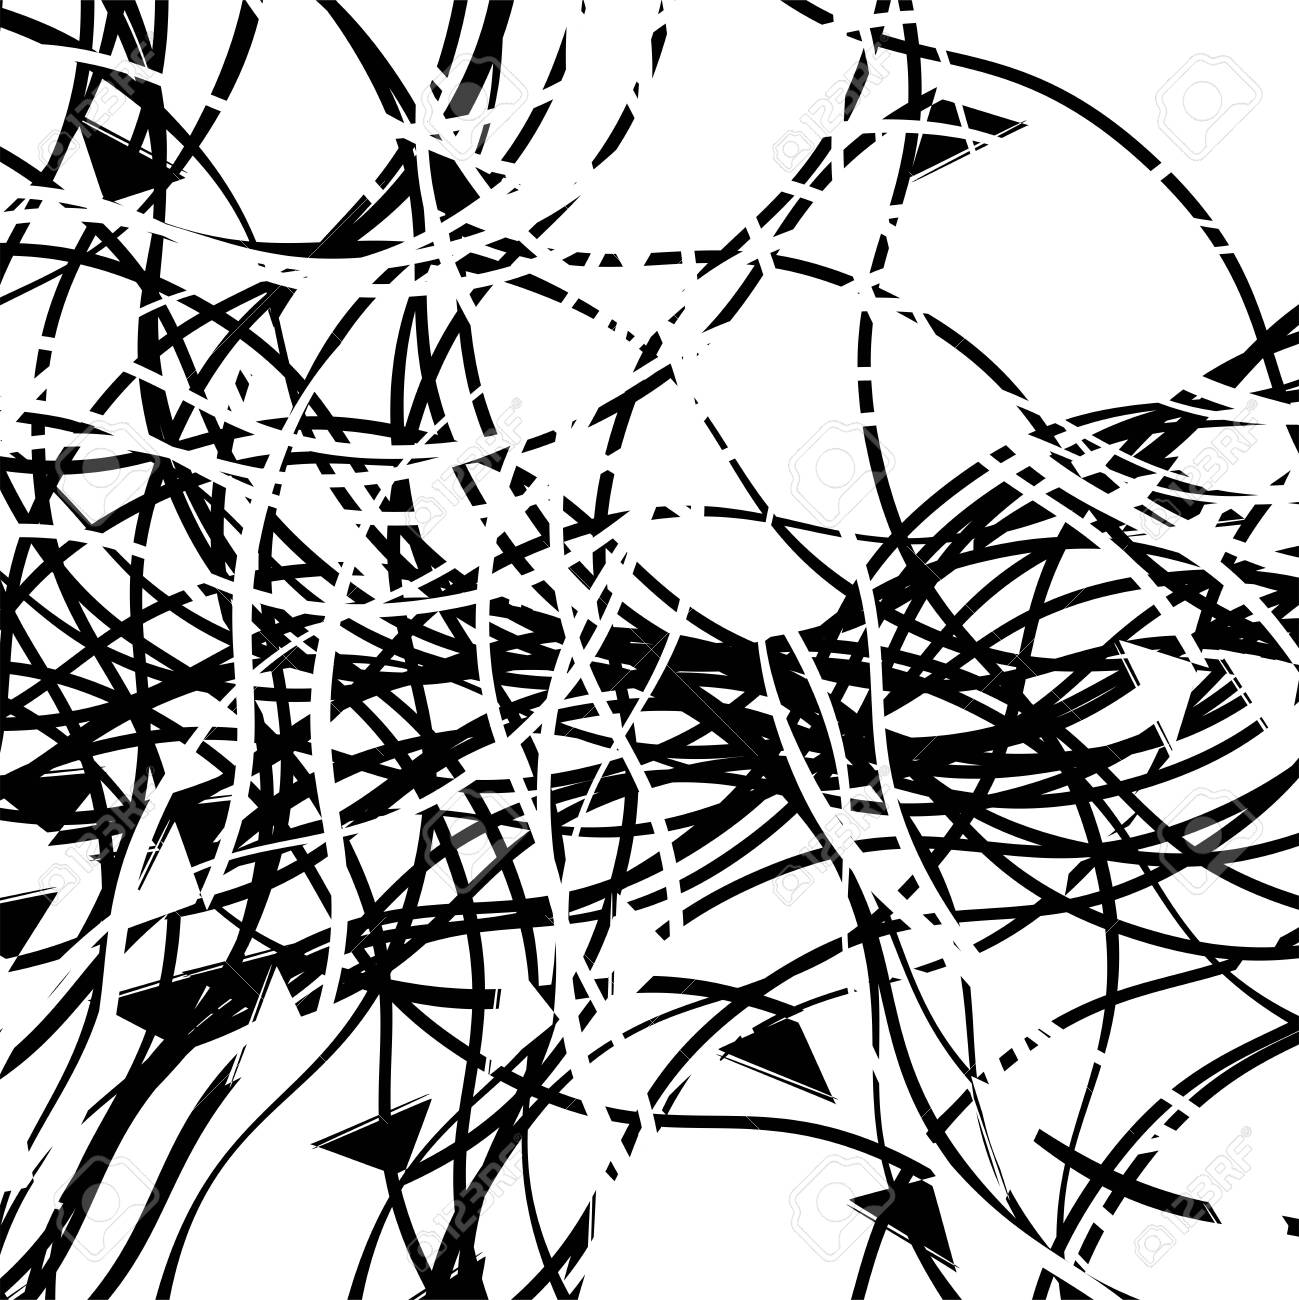 Abstract Art With Deformation Distortion Effect On Random Lines